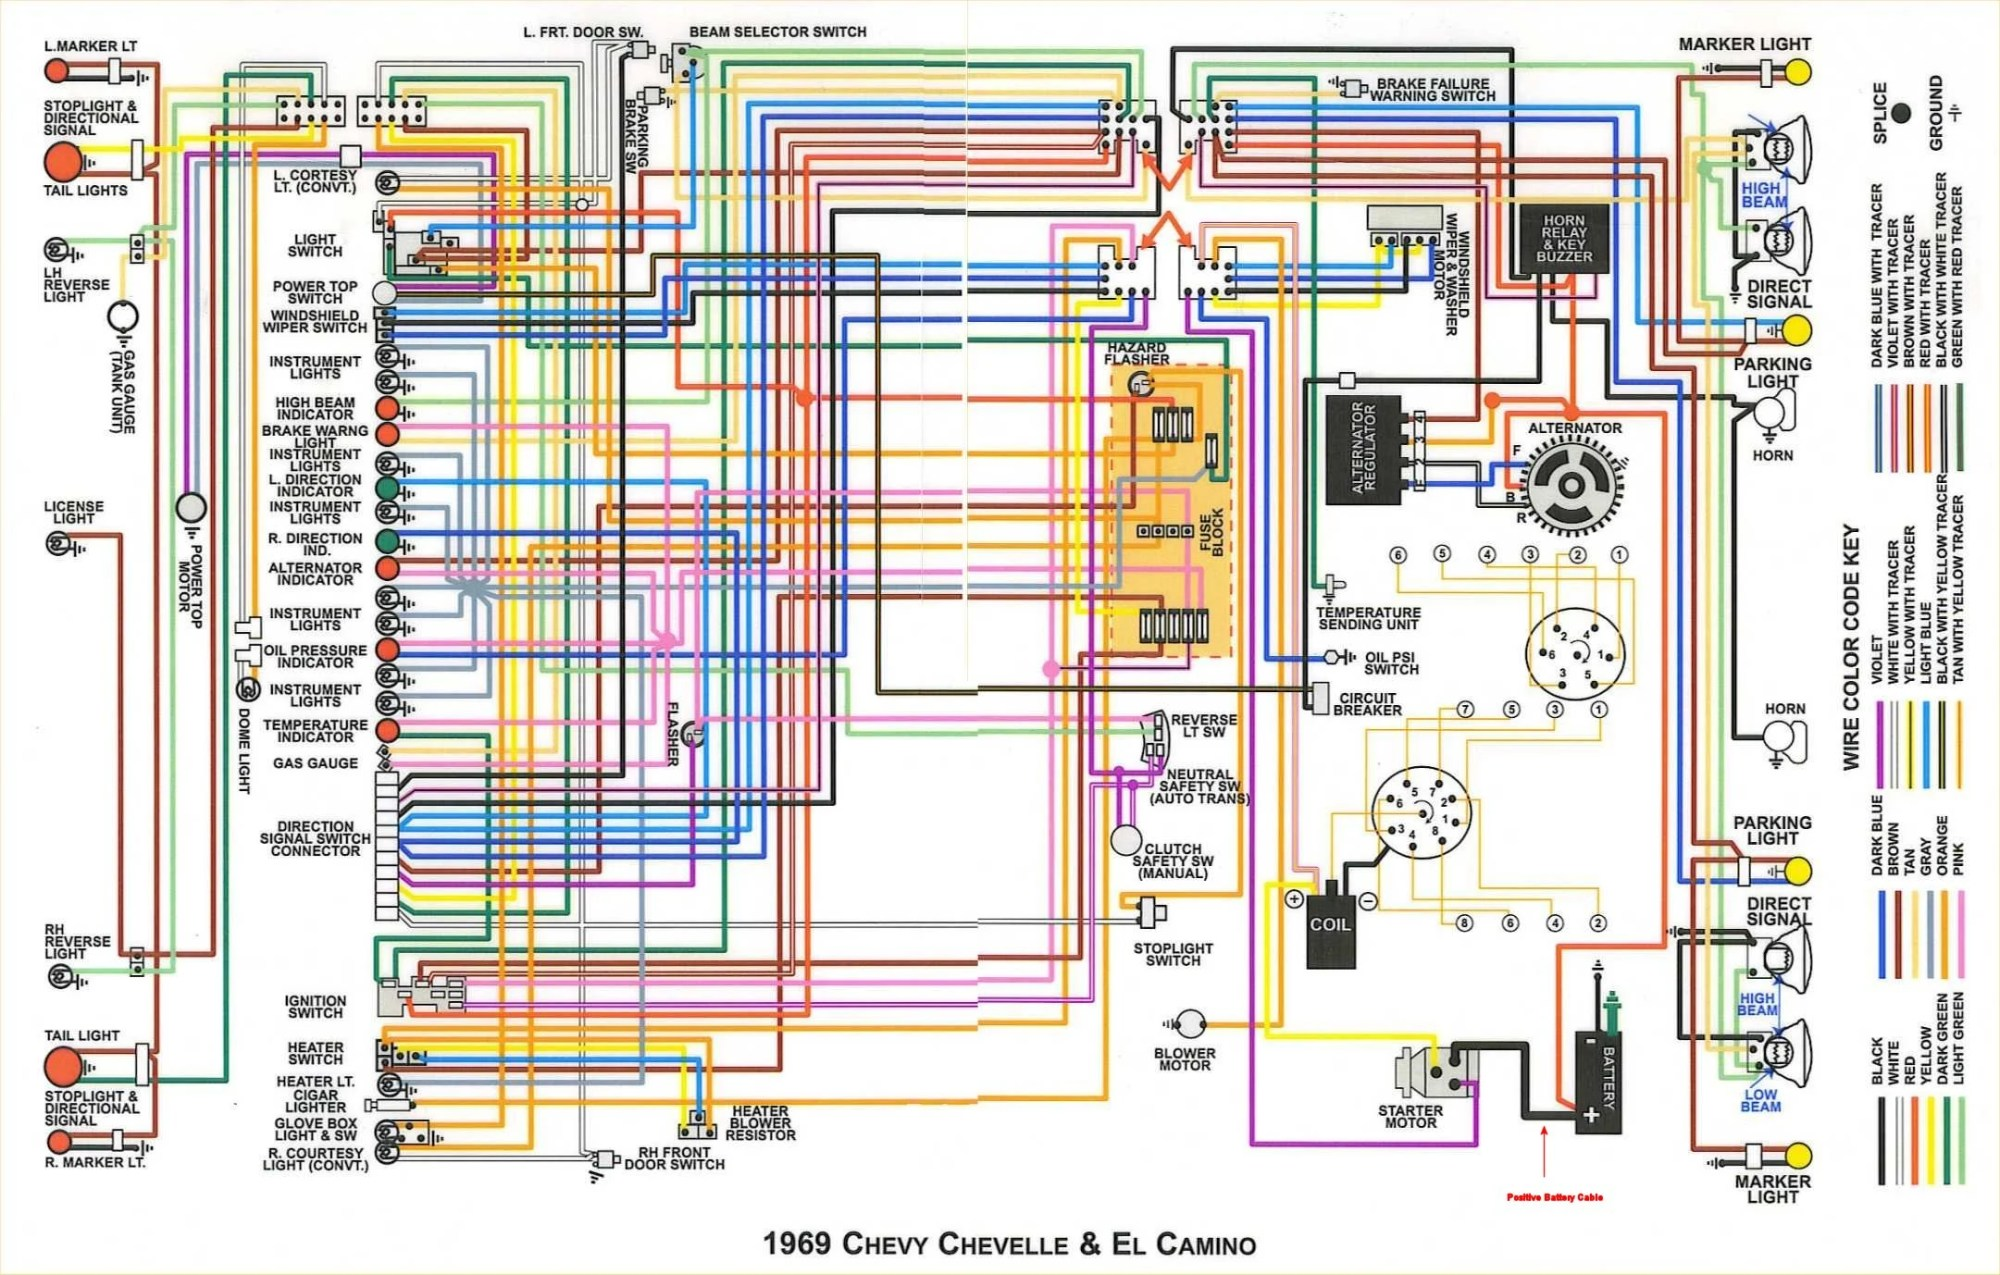 hight resolution of 1967 chevelle wiring harness wiring diagram blog 1967 chevelle complete wiring harness 1967 chevelle wiring harness